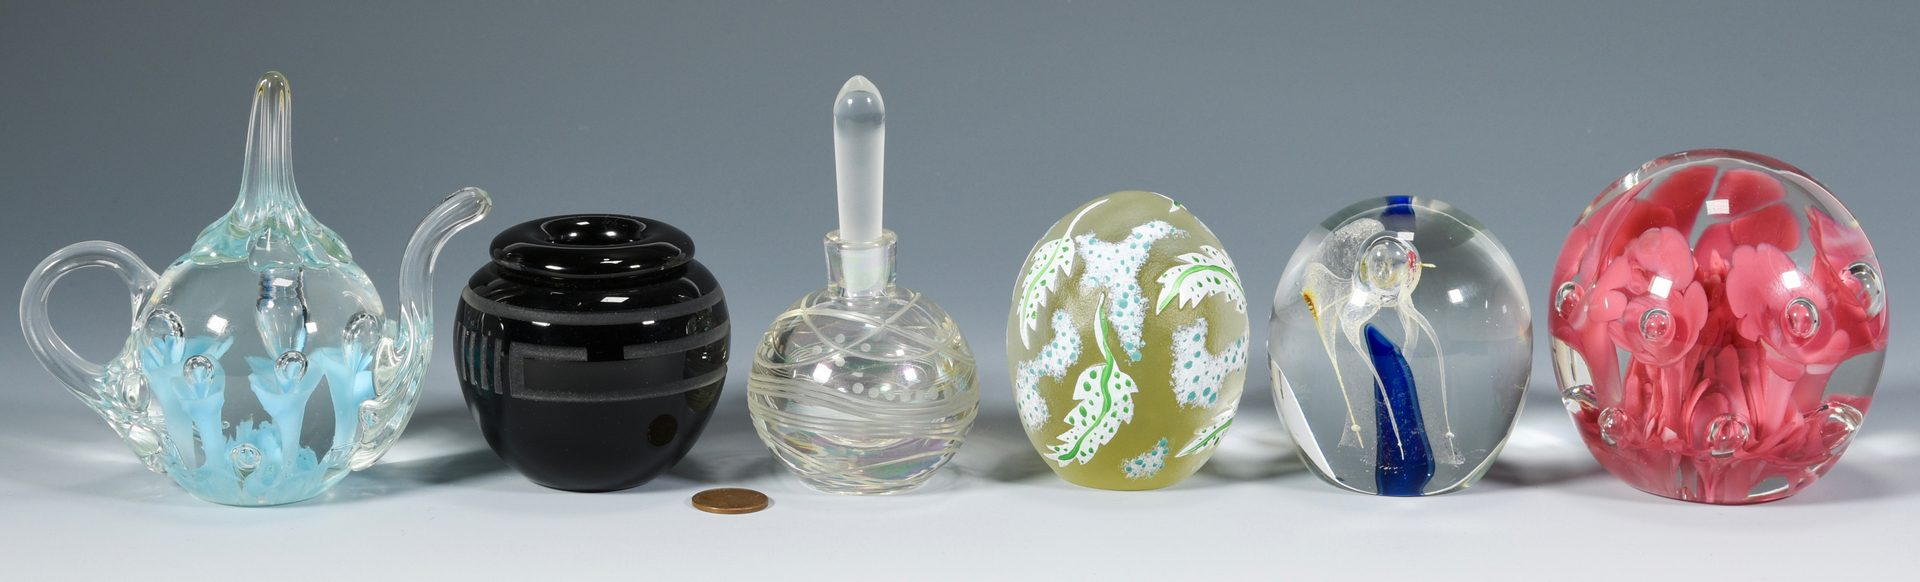 Lot 499: Group of Contemporary Art Glass, incl. St. Clair & Jolley